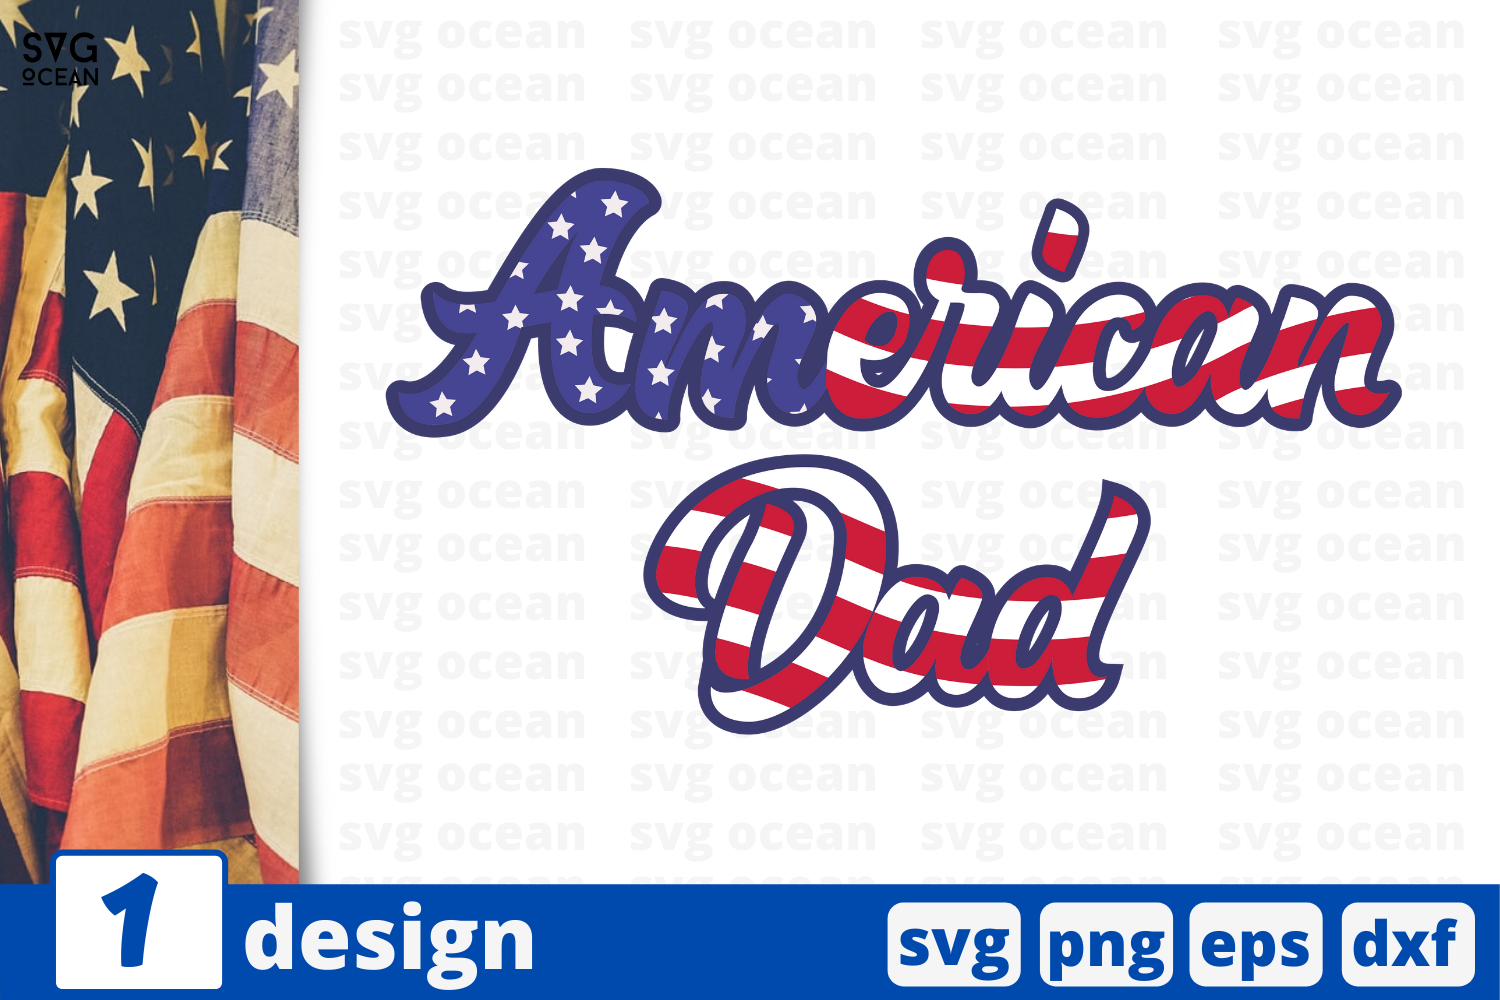 Download Free American Dad Graphic By Svgocean Creative Fabrica for Cricut Explore, Silhouette and other cutting machines.